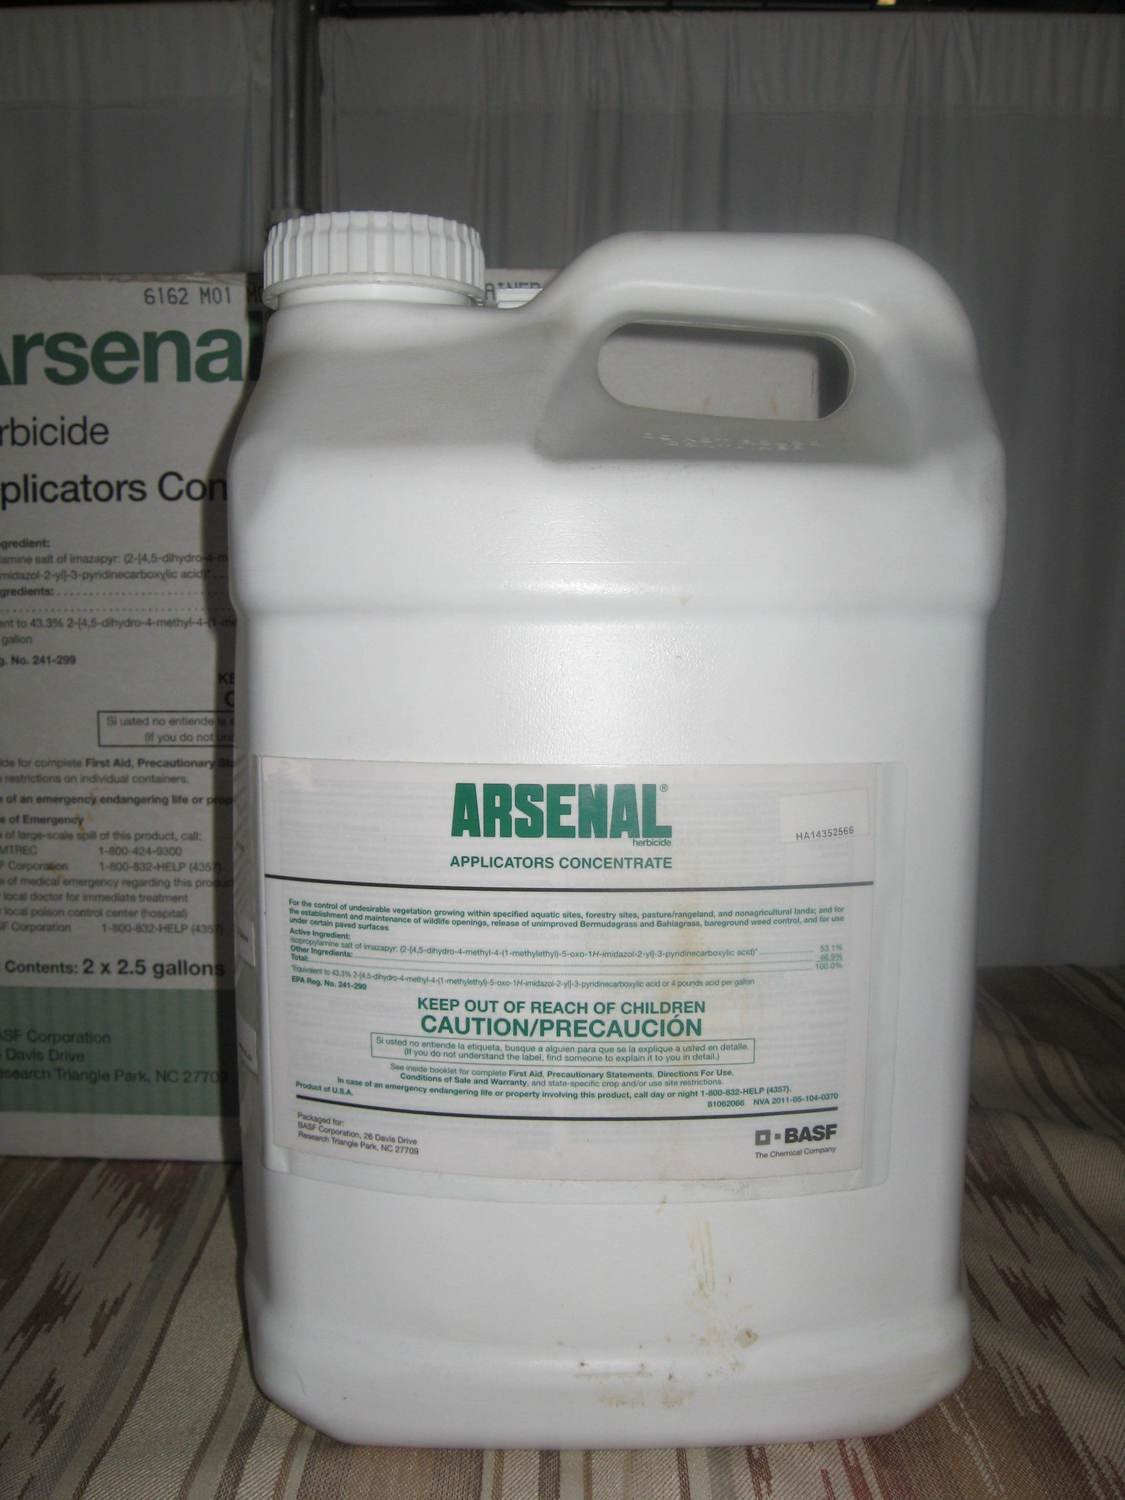 Arsenal® Herbicide Applicators Concentrate